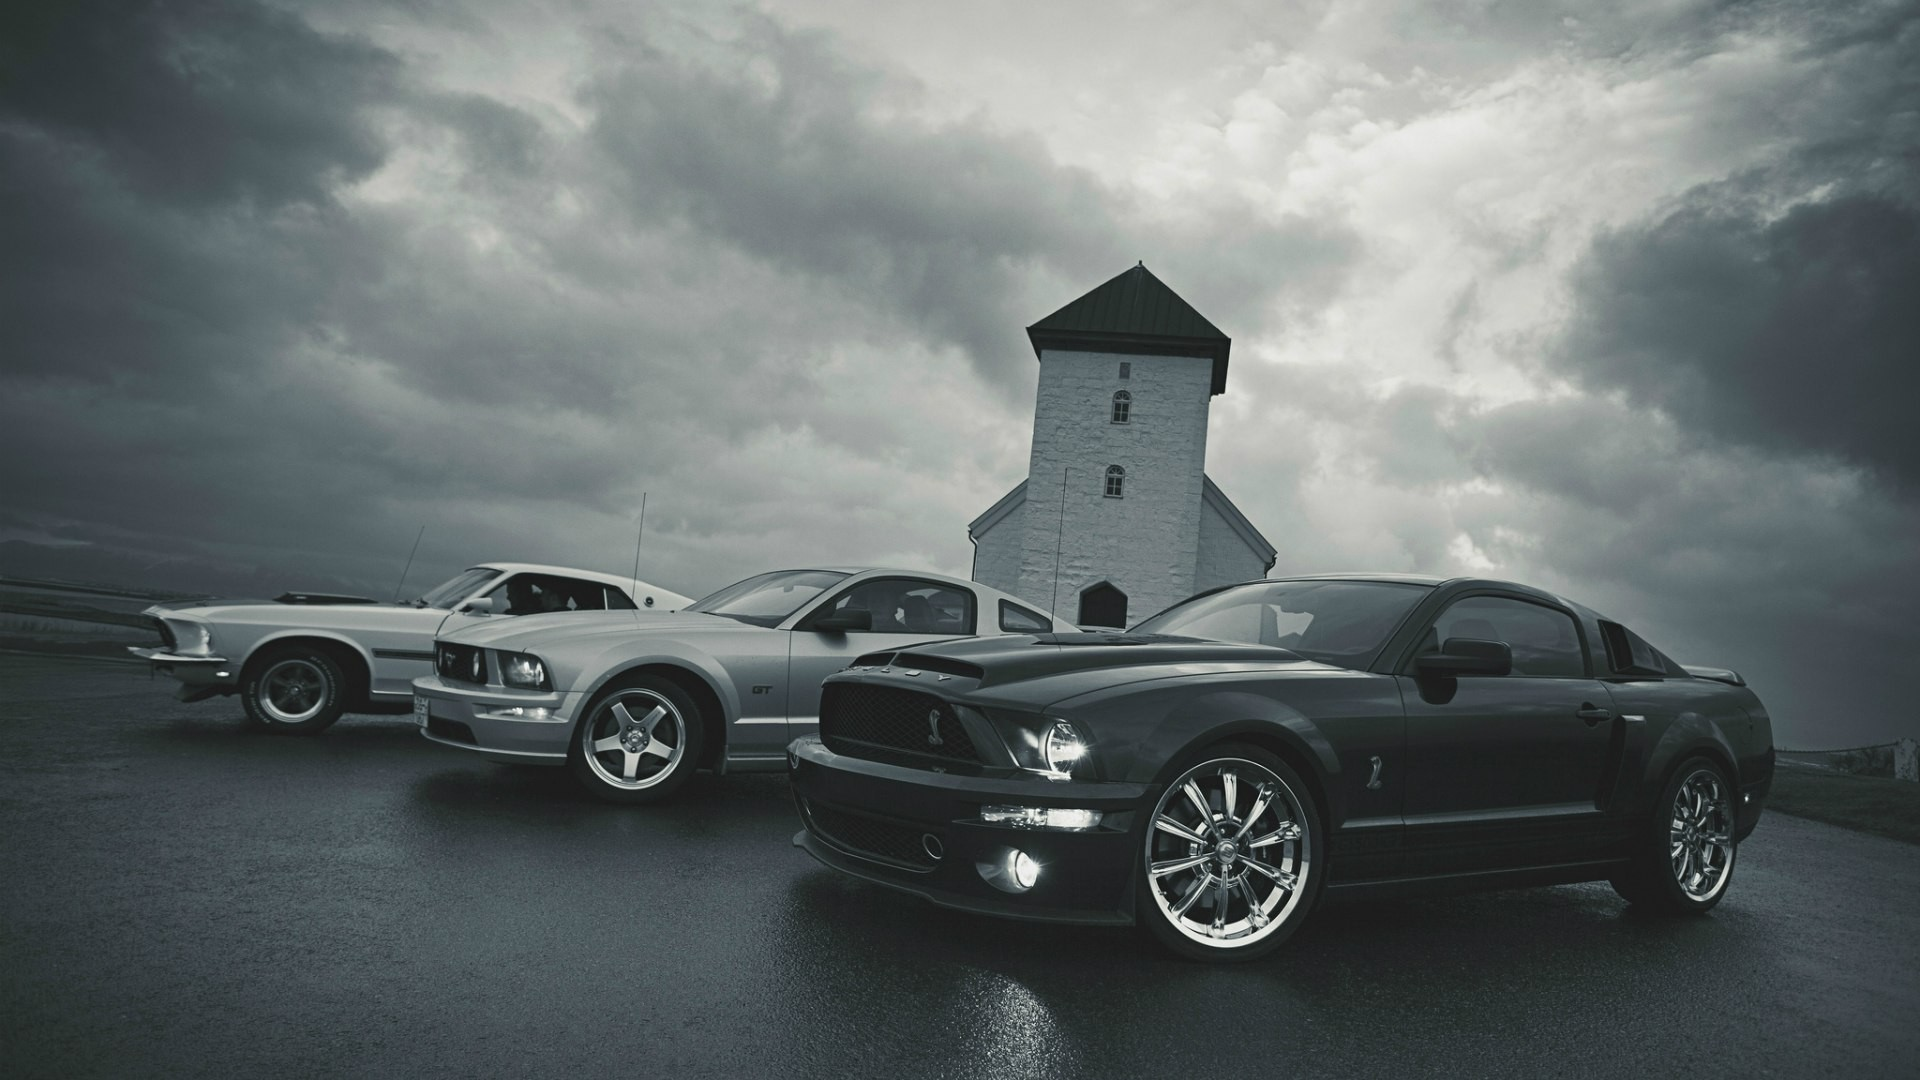 ford mustang muscle classic wallpaper | 1920x1080 | 110682 | wallpaperup